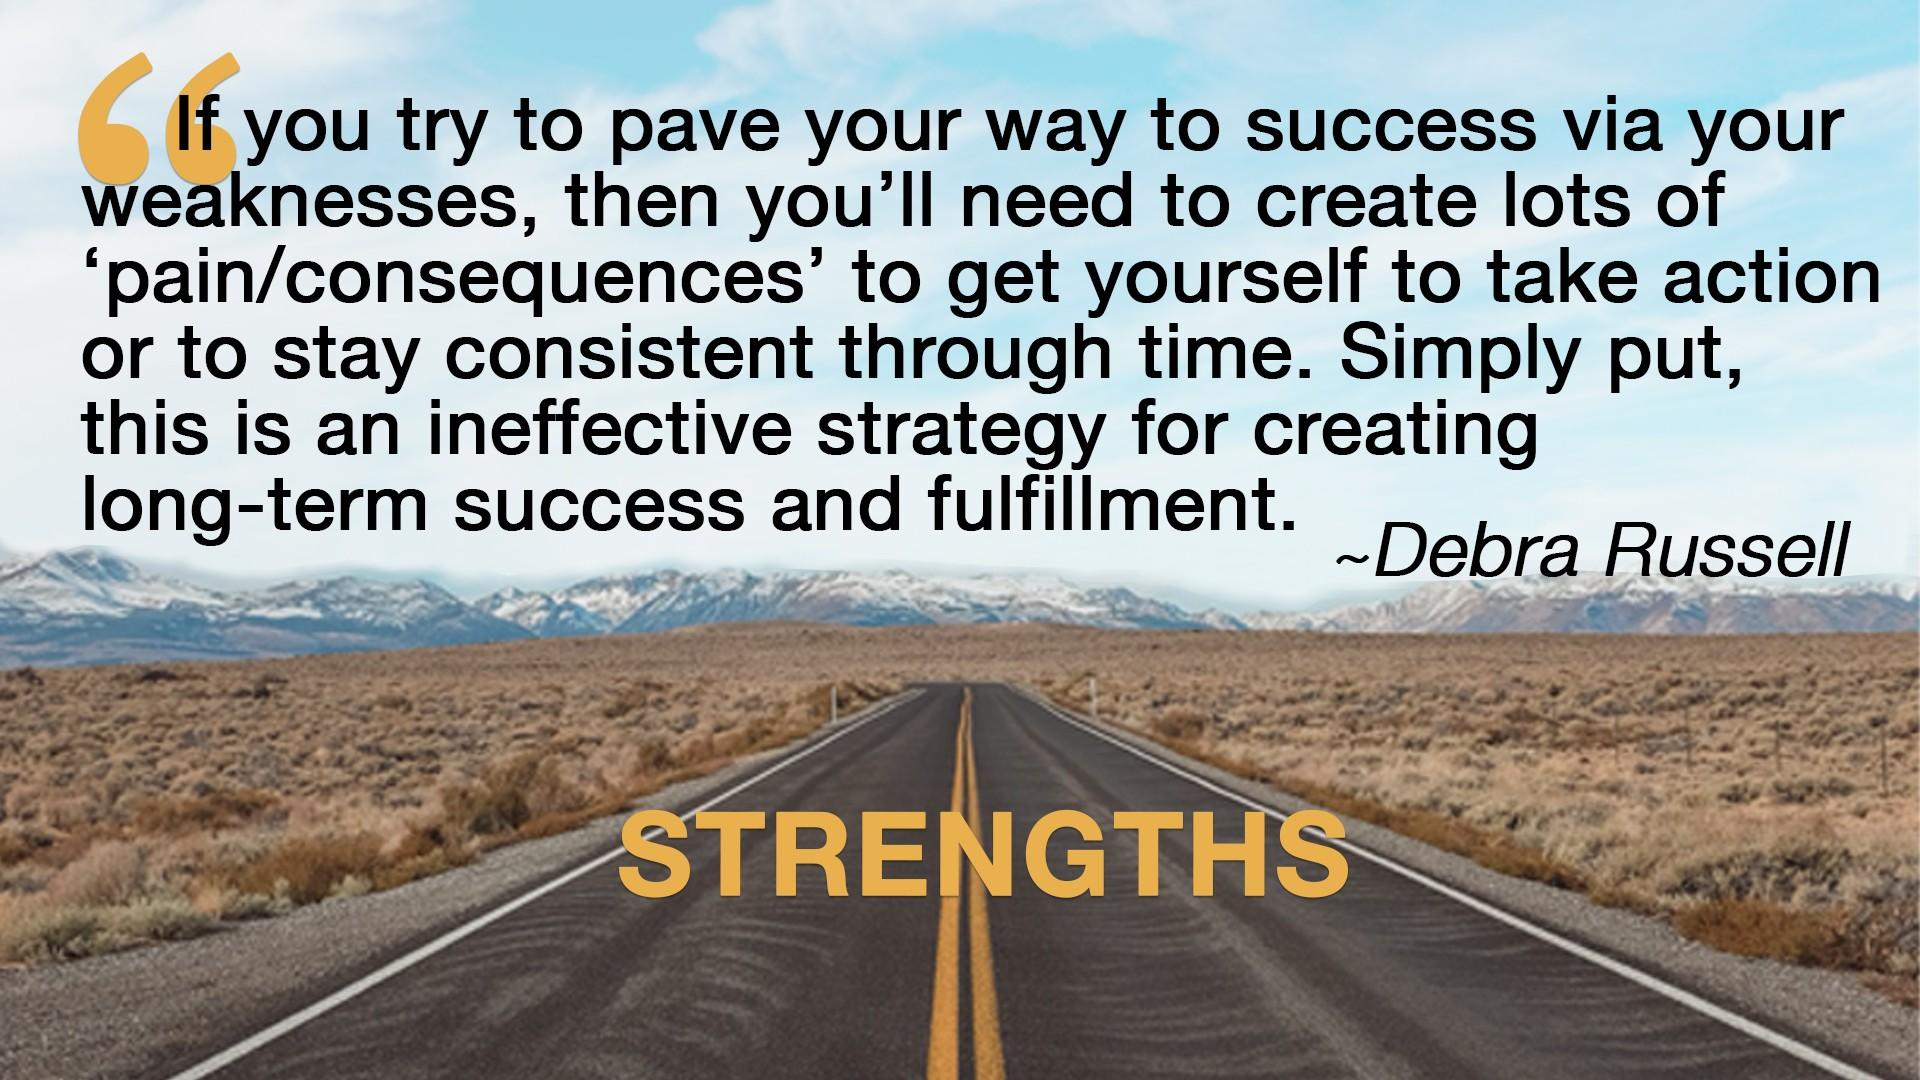 Debra Russell Quote on Strengths